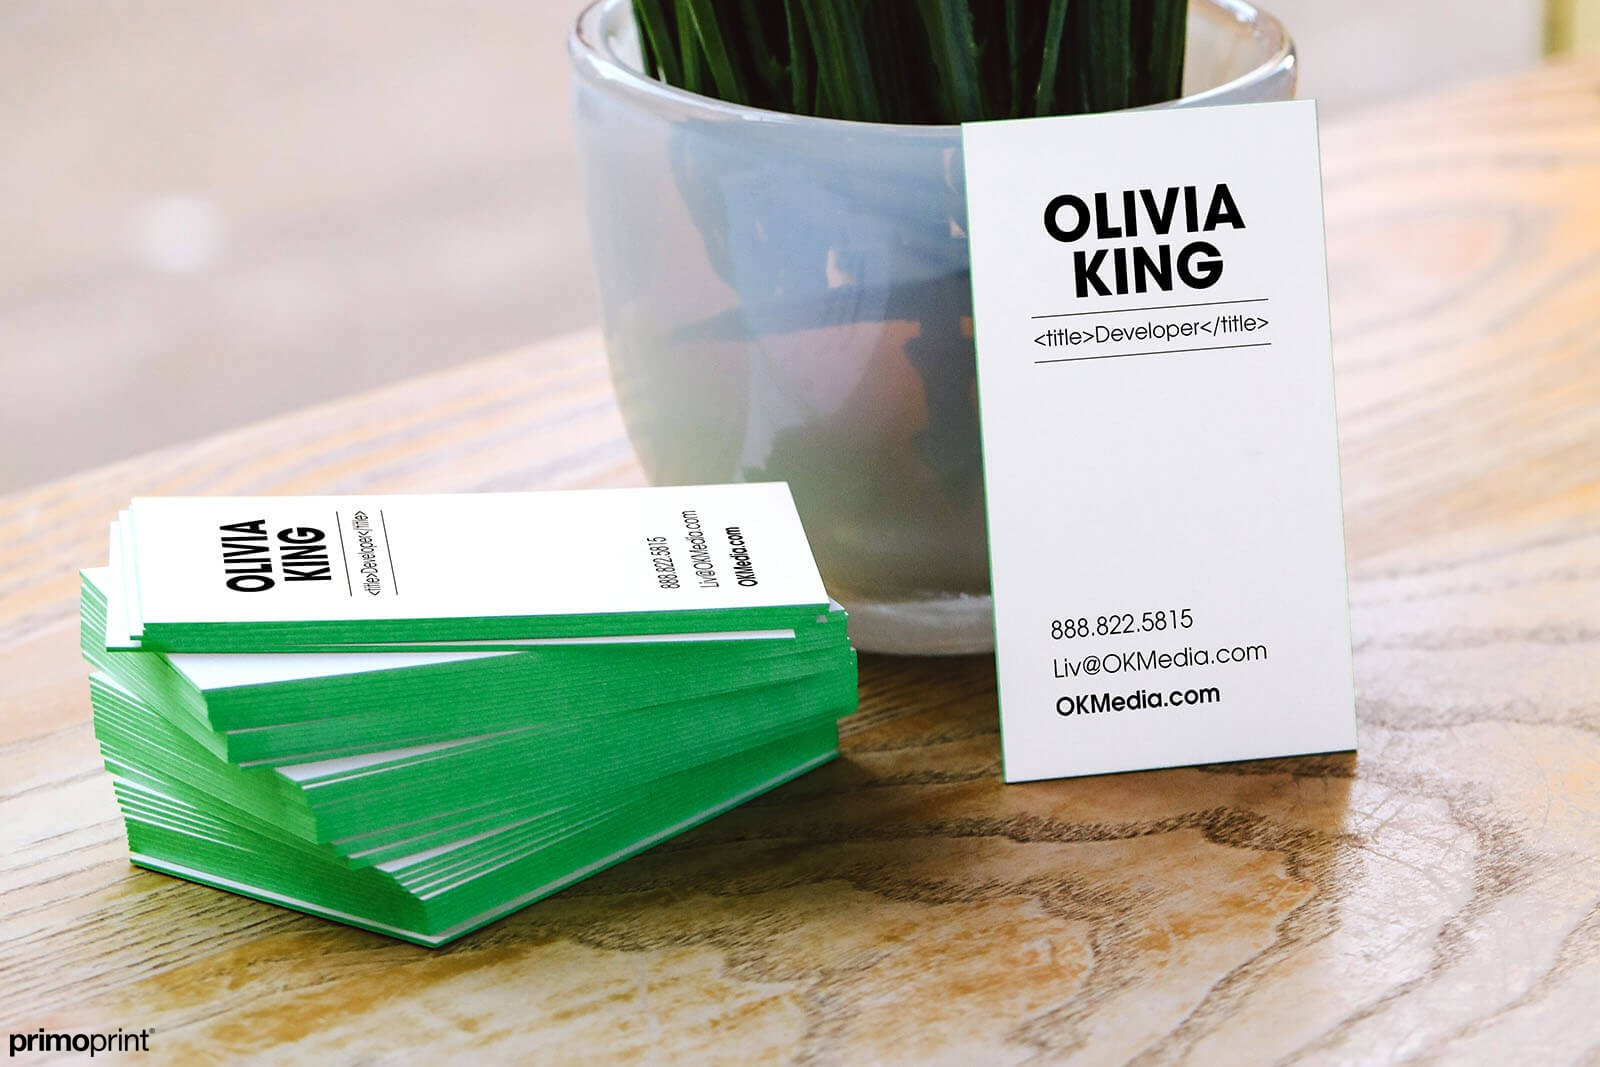 32PT super thick green painted edge business cards.